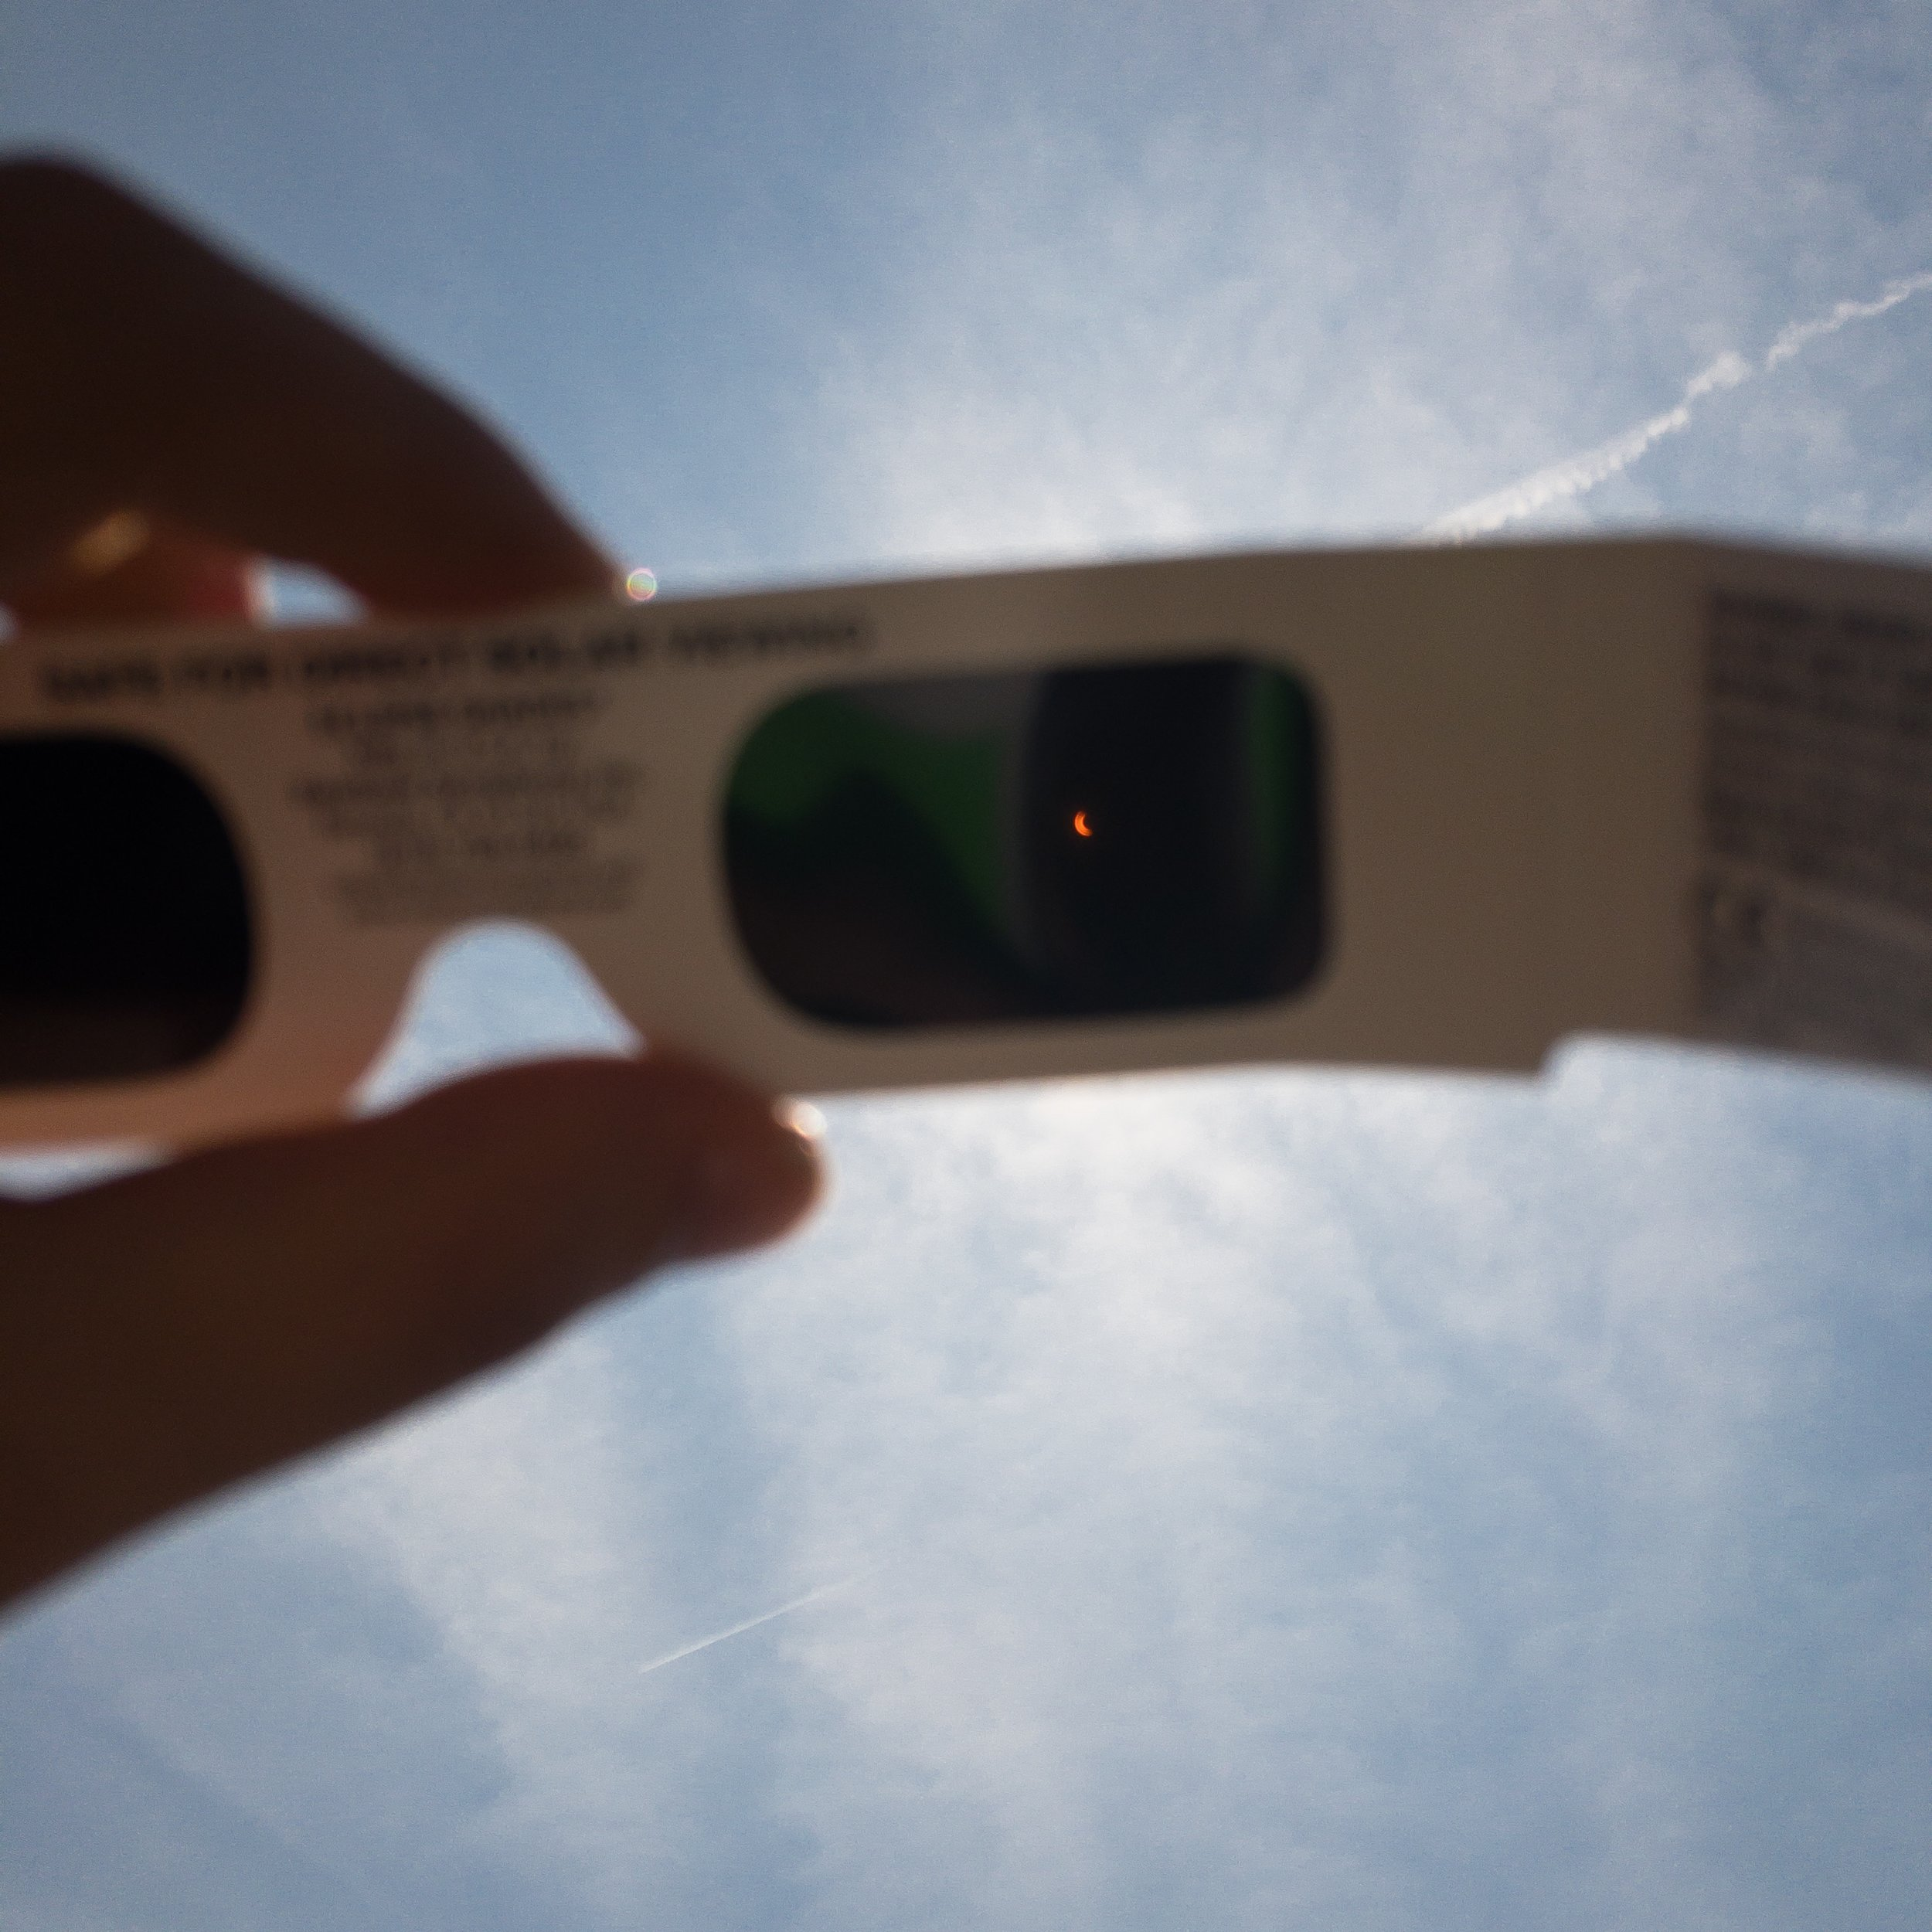 Solar Eclipse Through Solar Eclipse Glasses